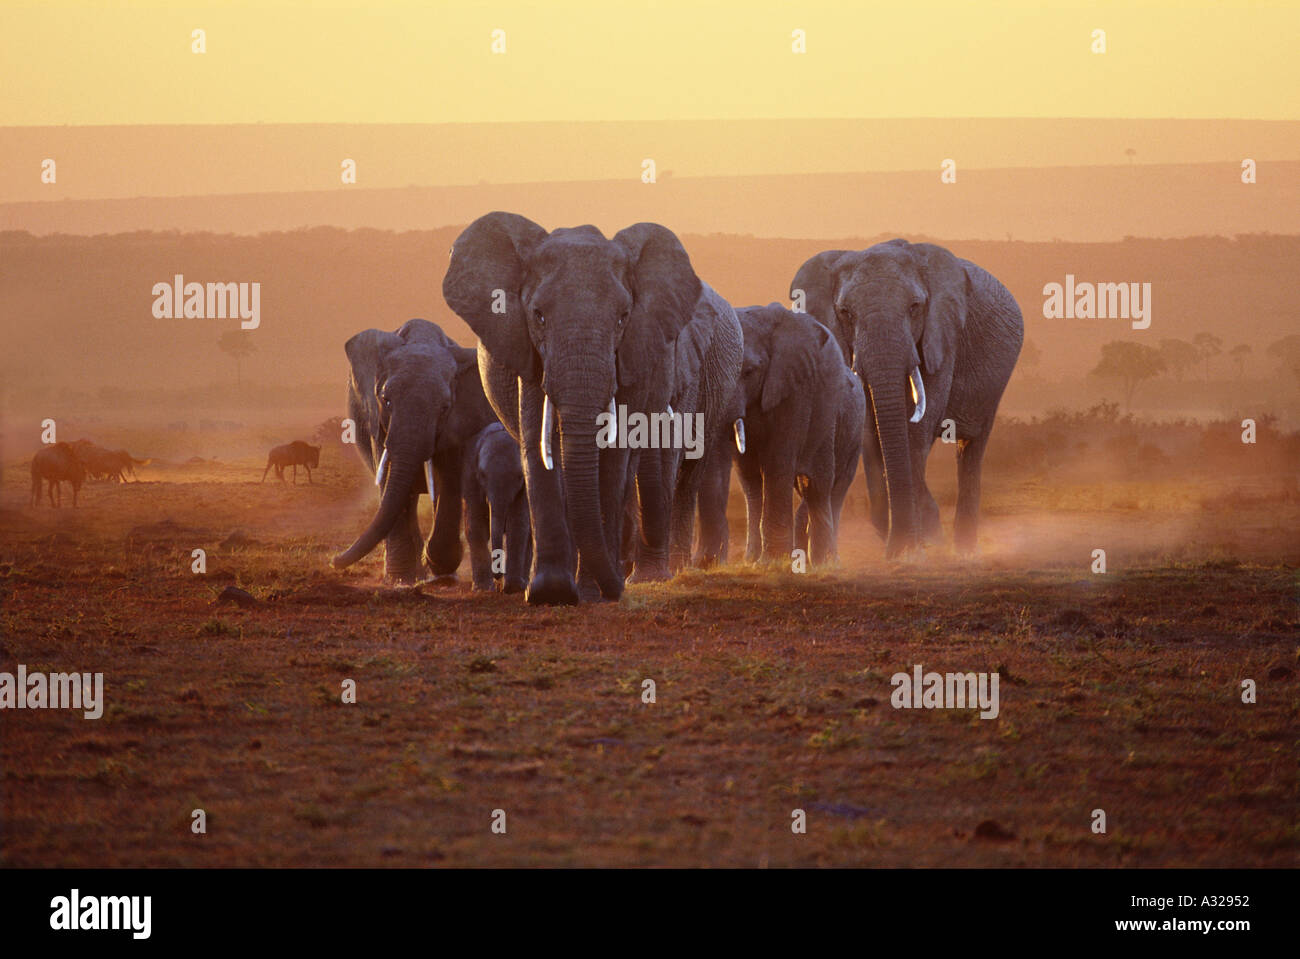 Elephant family at dawn Masai Mara Kenya - Stock Image